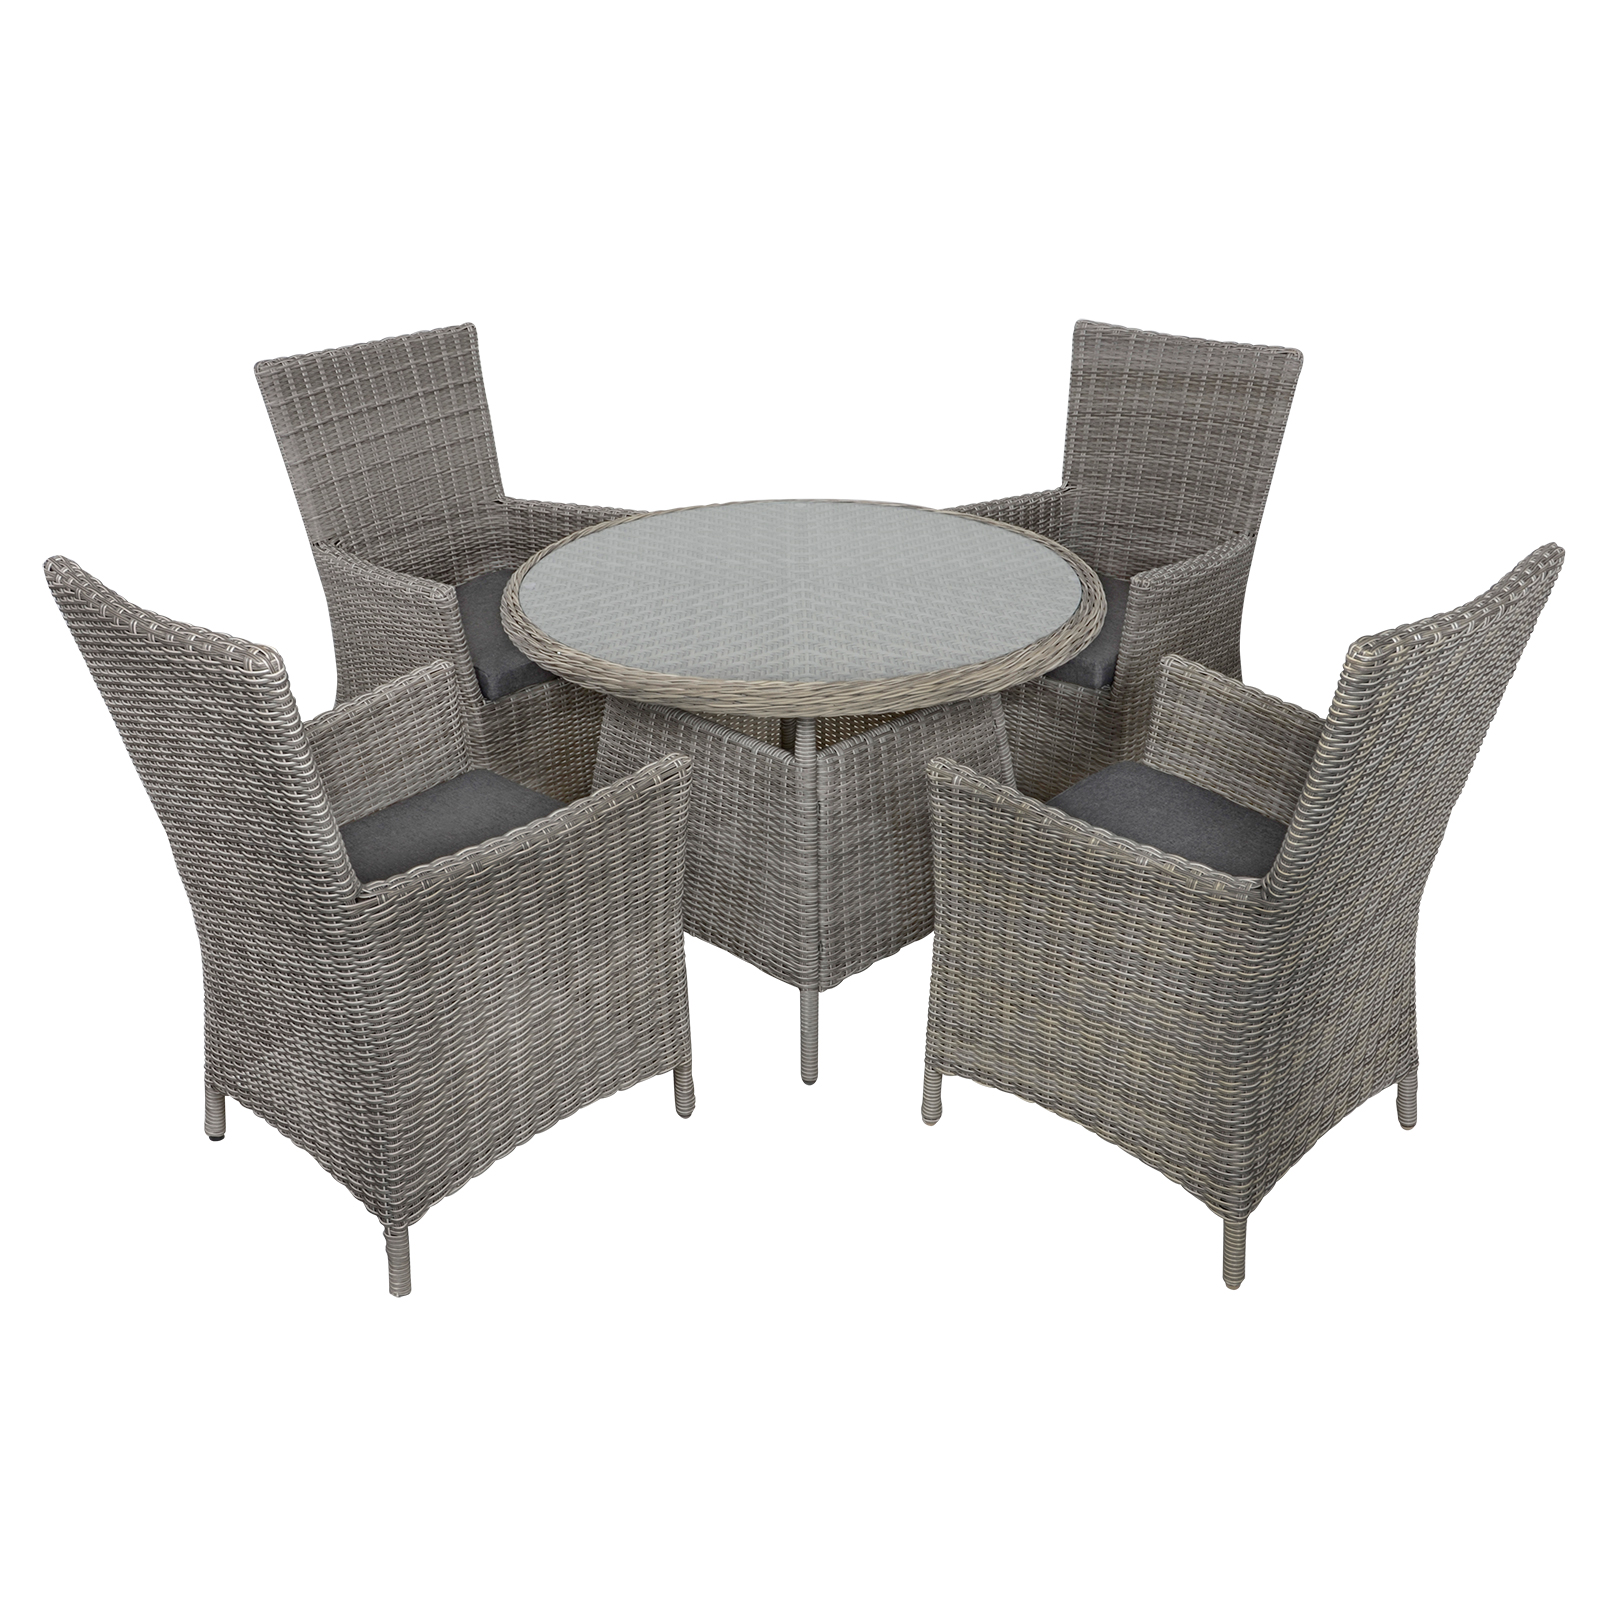 rattan garden chairs and table folding chair that fits in your pocket belize wicker 4 seat patio furniture dining